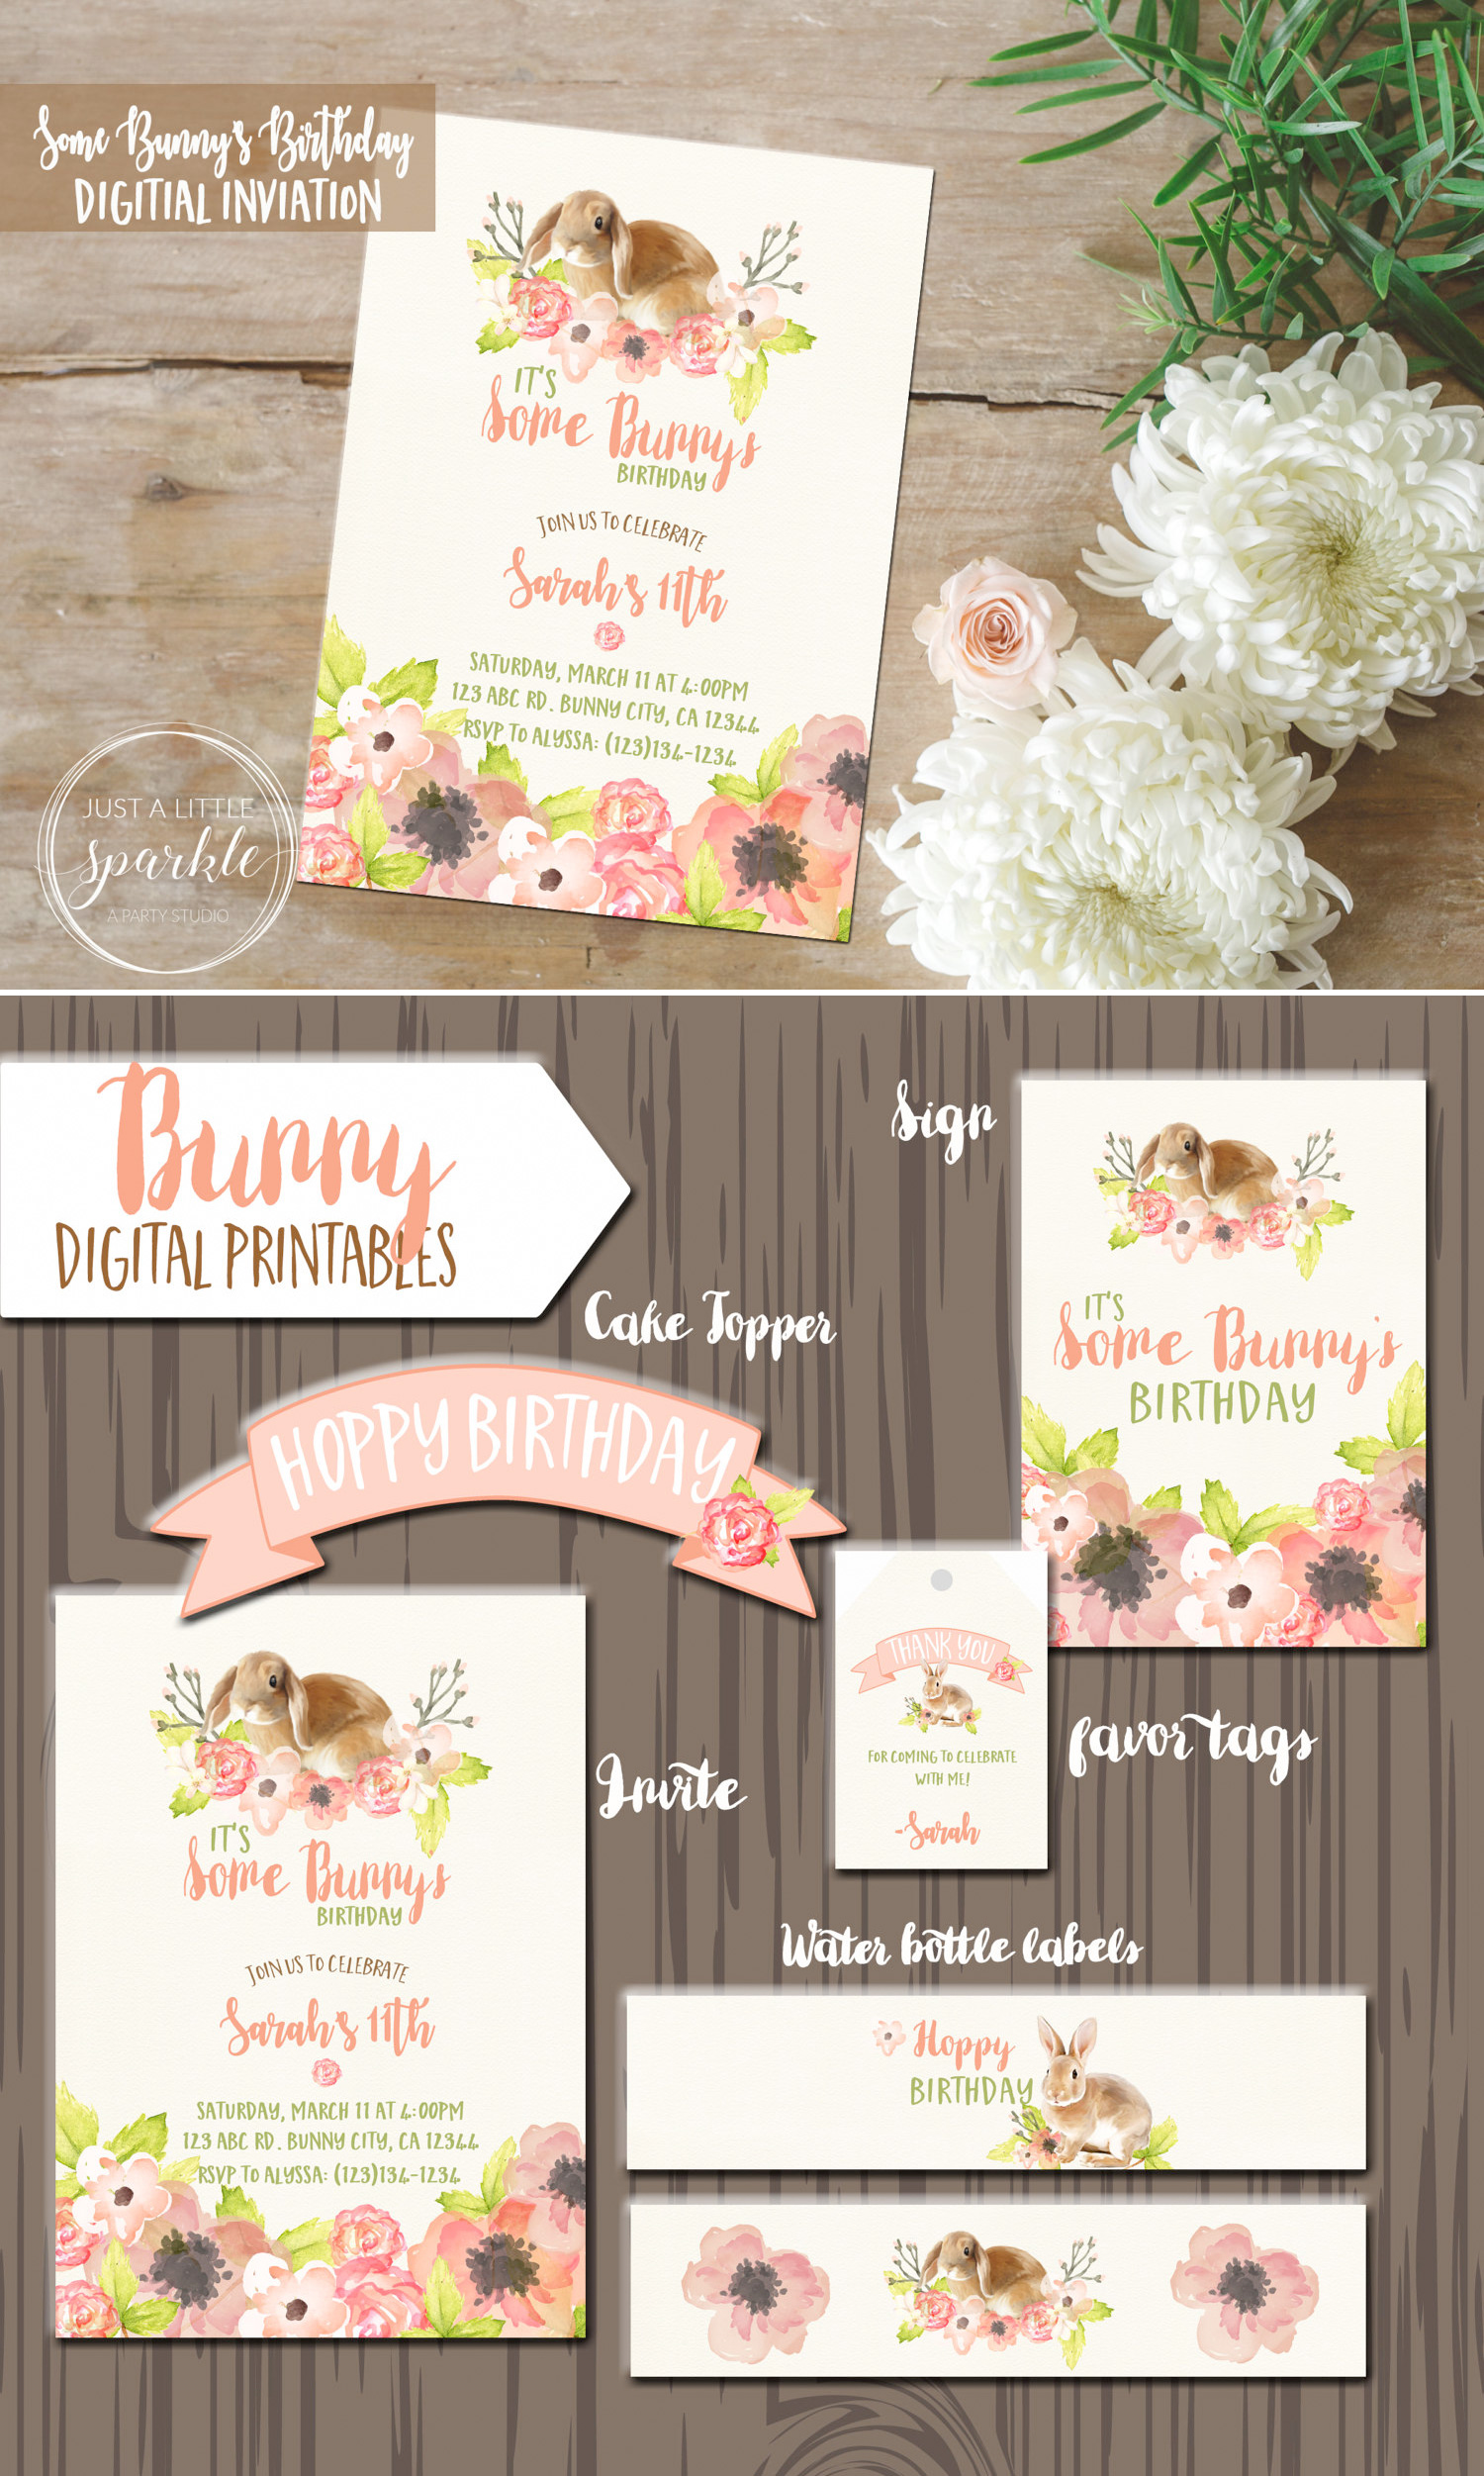 Some Bunny's Birthday Digital Invitation and Bunny Digital Printables for Spring Parties and Easter Celebrations / from Just a Little Sparkle / as seen on www.GiggleHearts.com